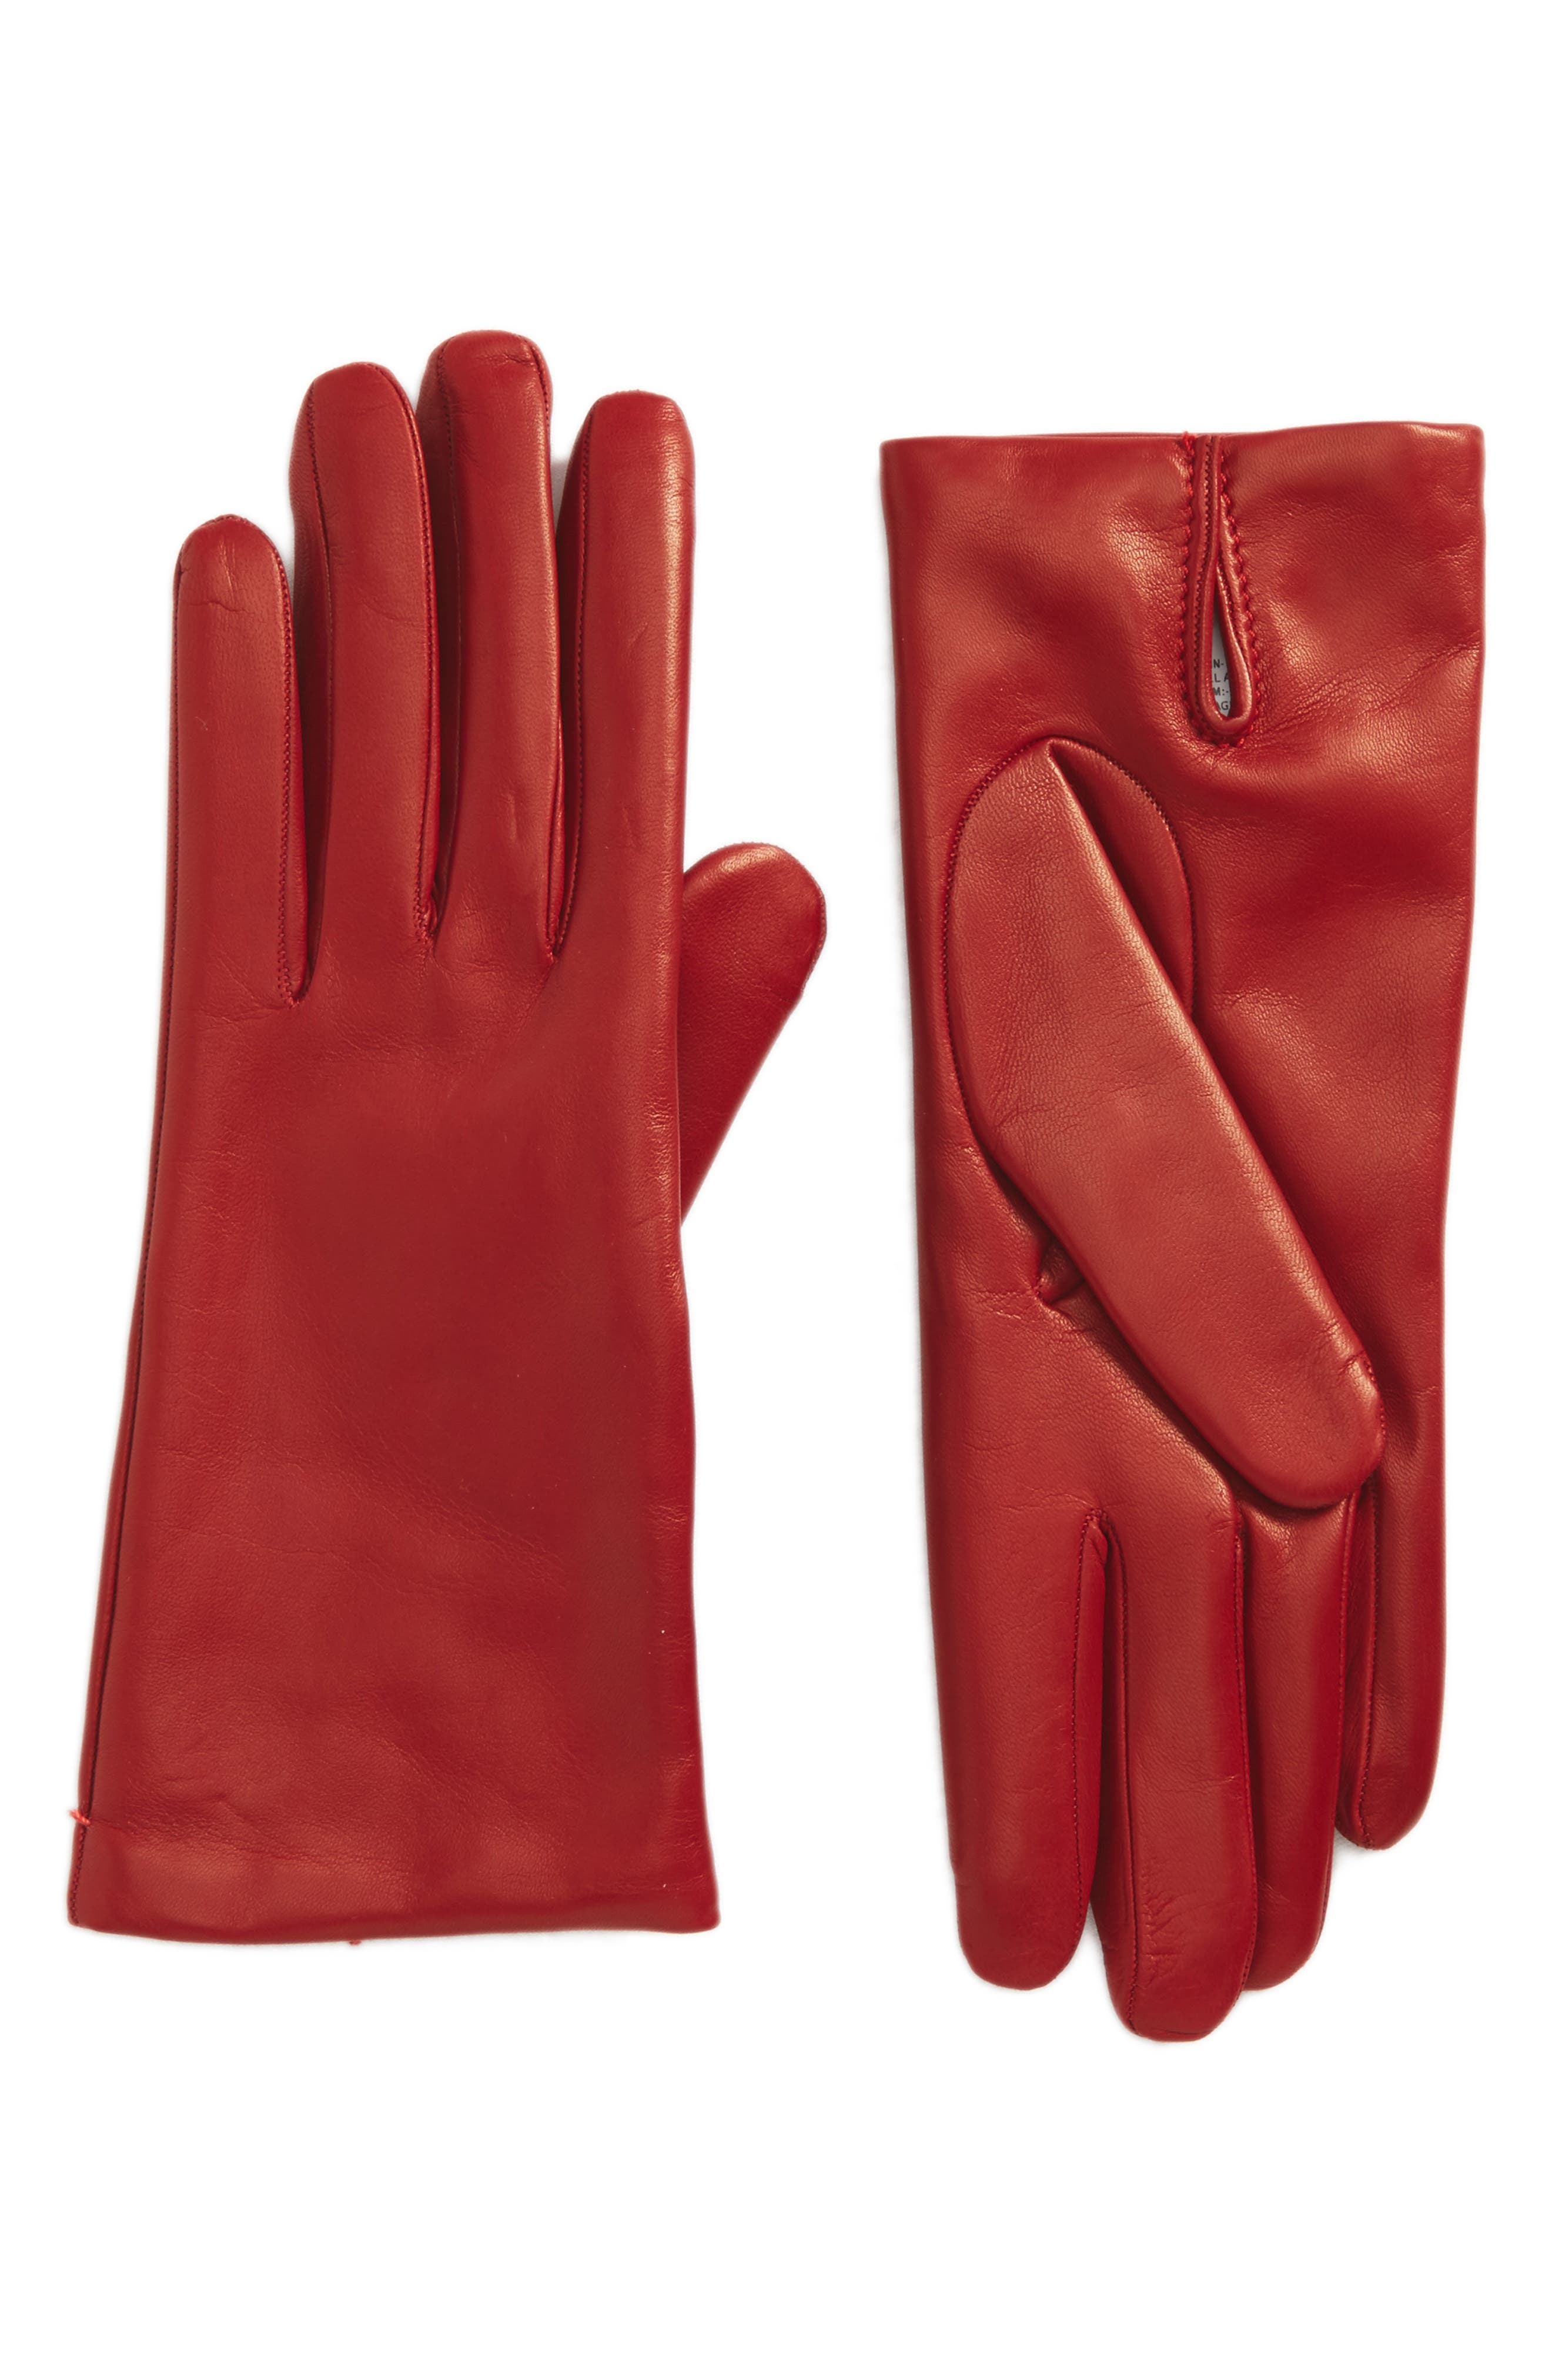 Ragusa Leather Gloves,                         Main,                         color, Red